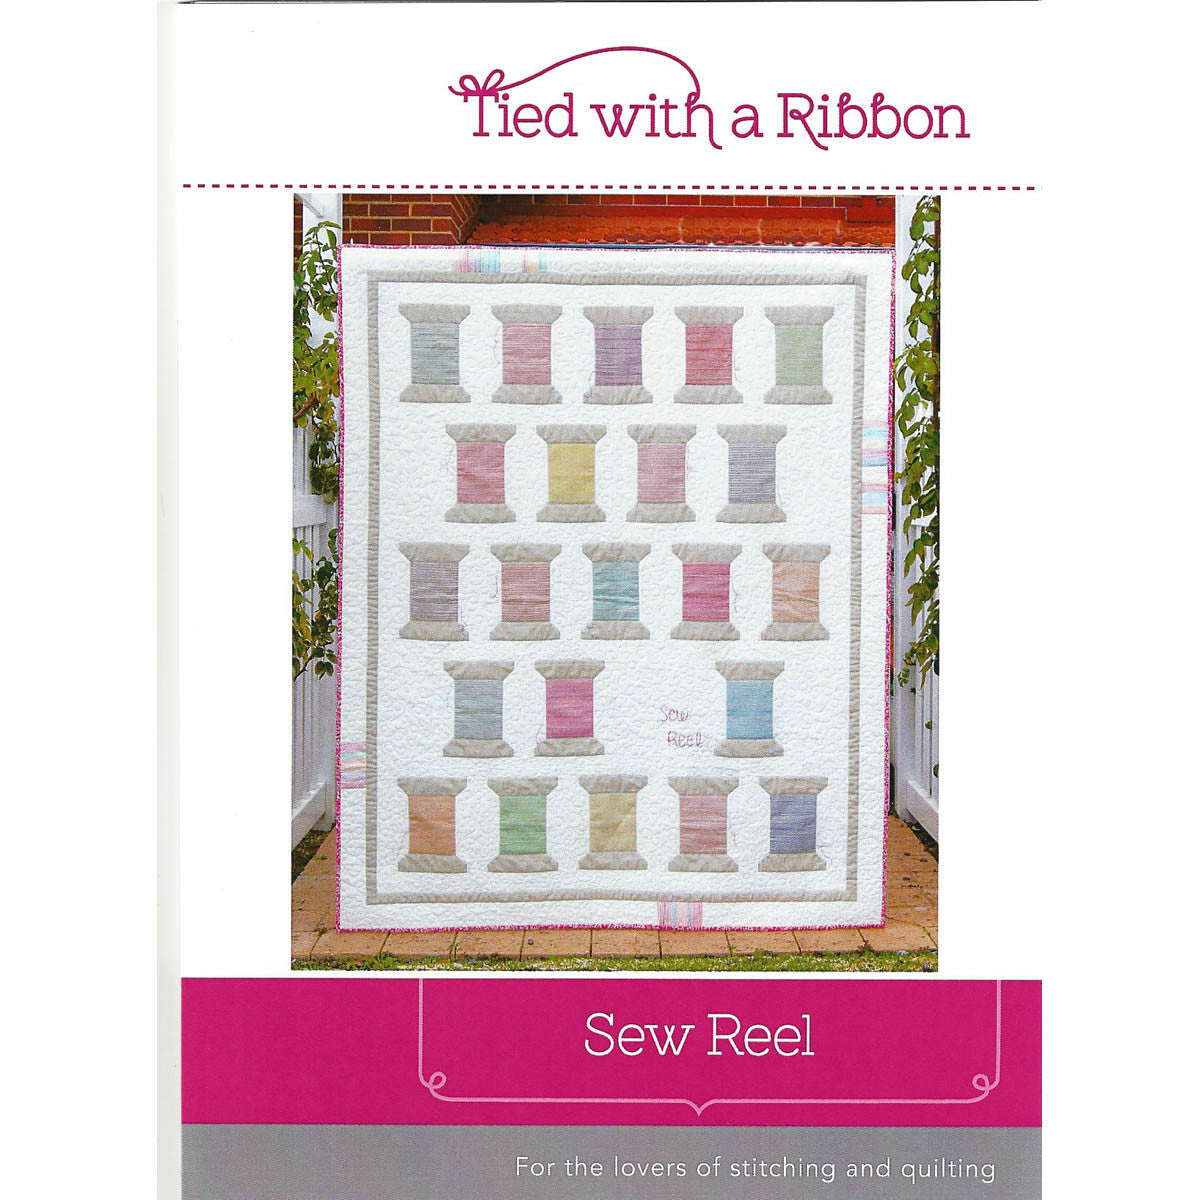 SEW REEL - Quilt Pattern - by Australian Designer Jemima Flendt - brand: Tied With A Ribbon